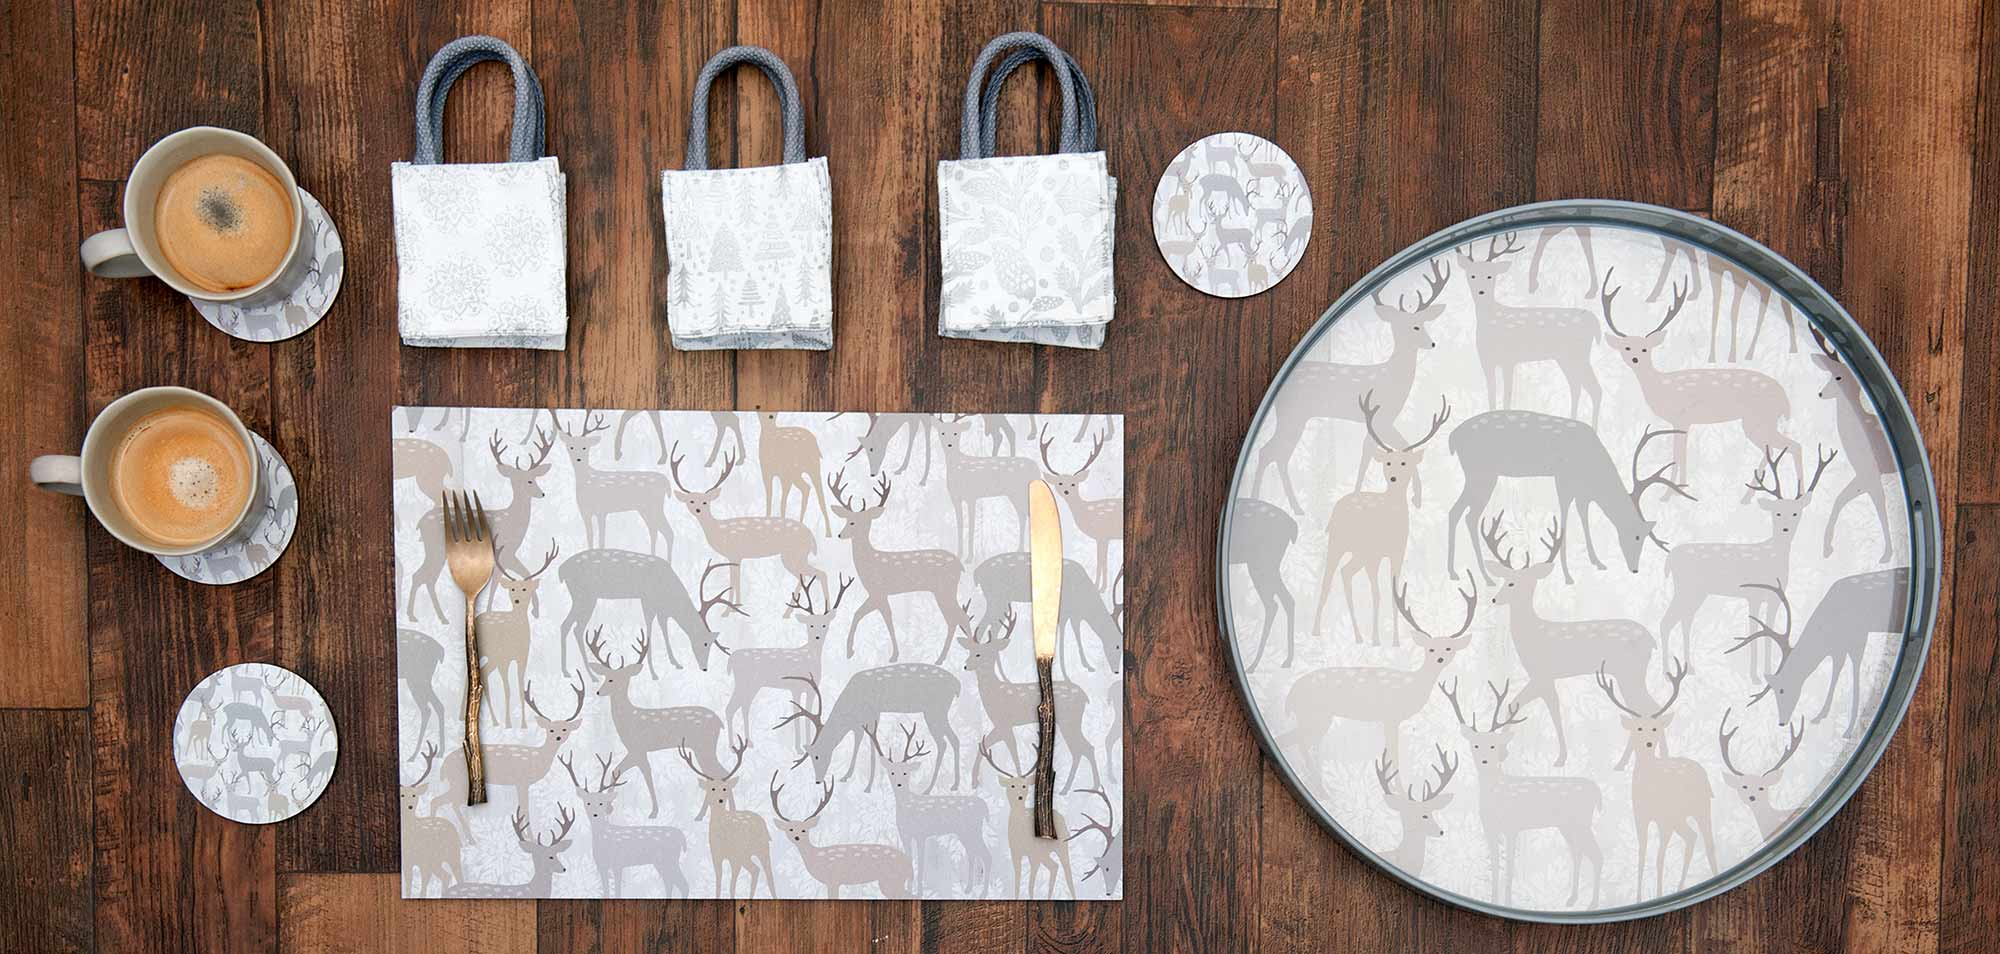 Deer-themed home decor for soft, neutral, winter home decor. Coasters, placemats, serving tray.